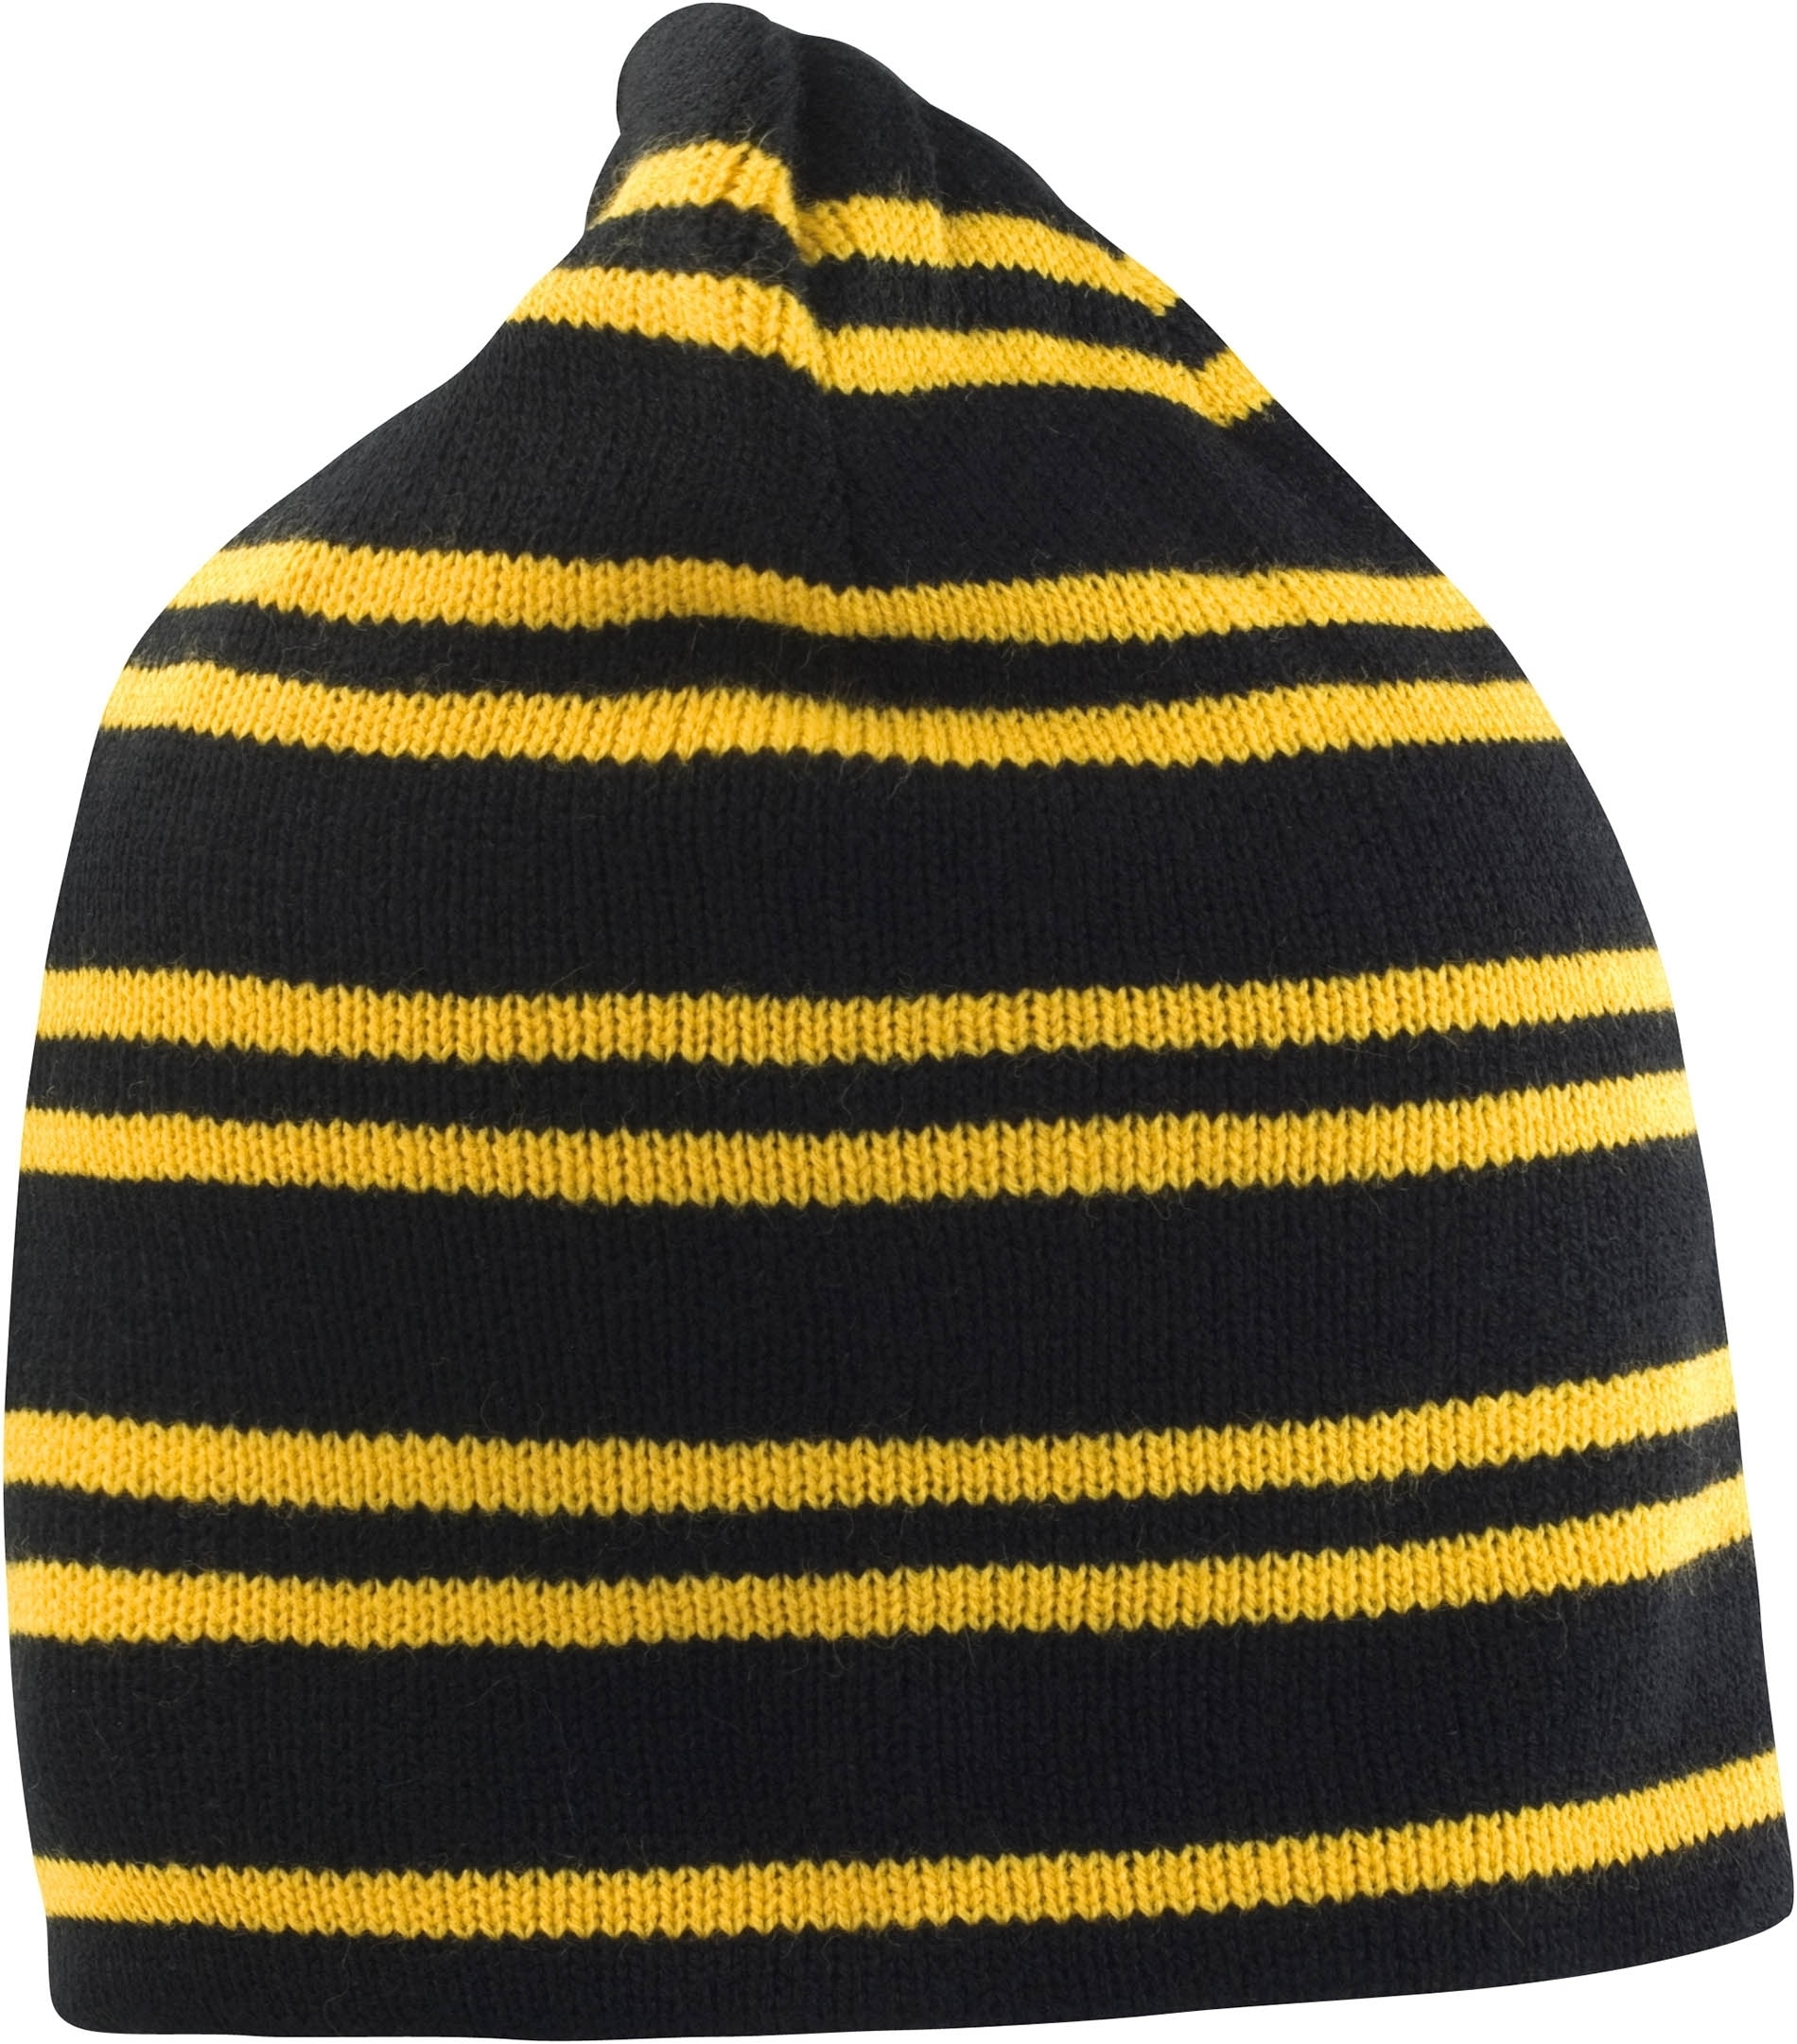 Bonnet réversible Team Black / Gold / Black Noir